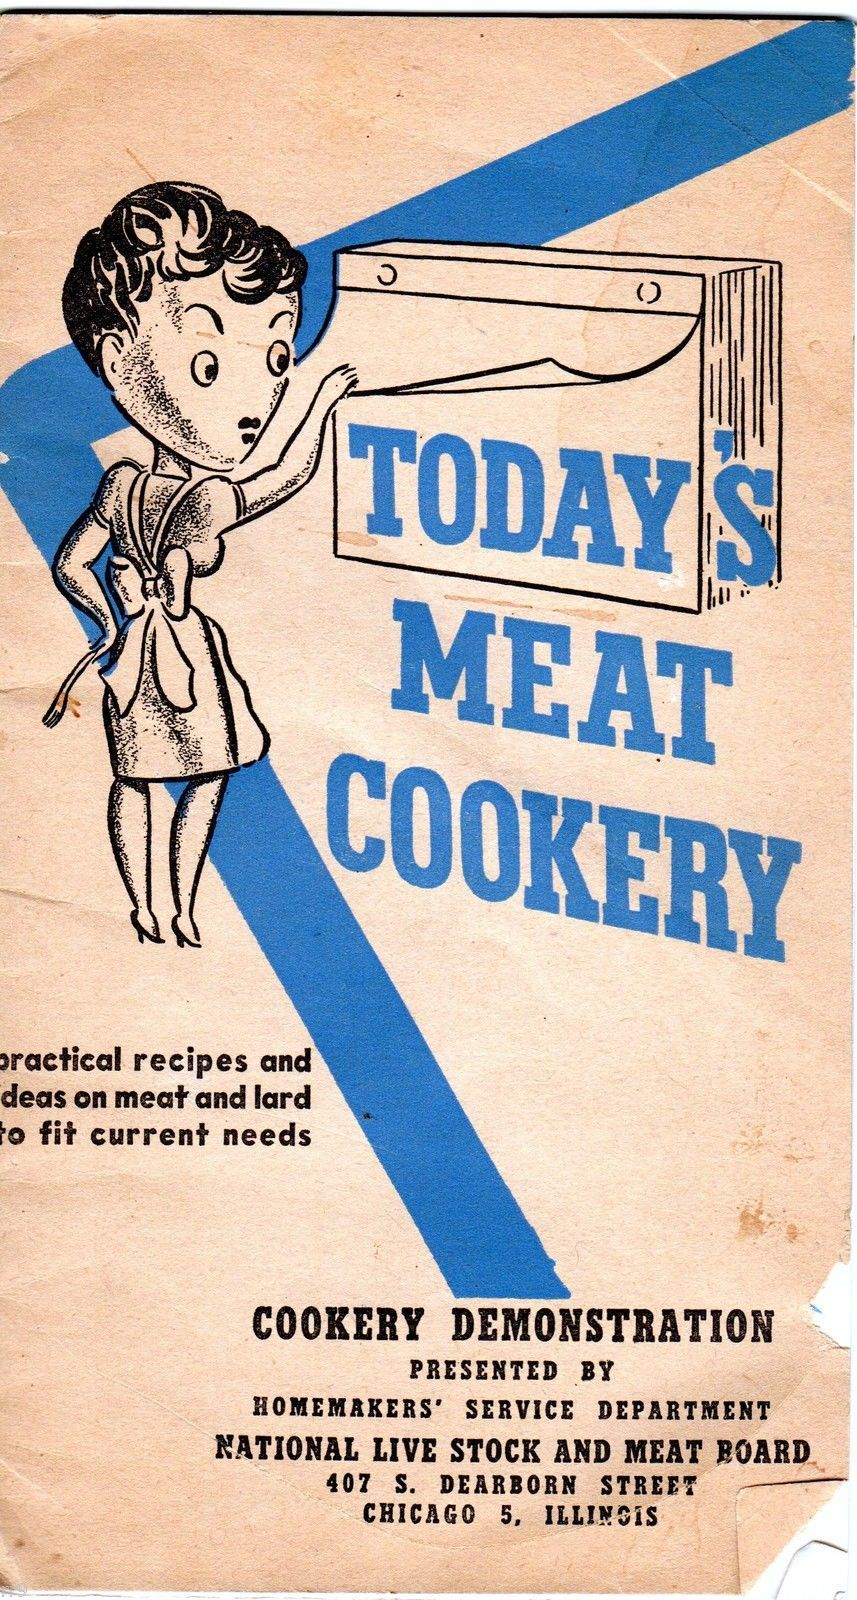 Primary image for Today's Meat Cookery Practical Recipes and Ideas National Stock and Meat Board